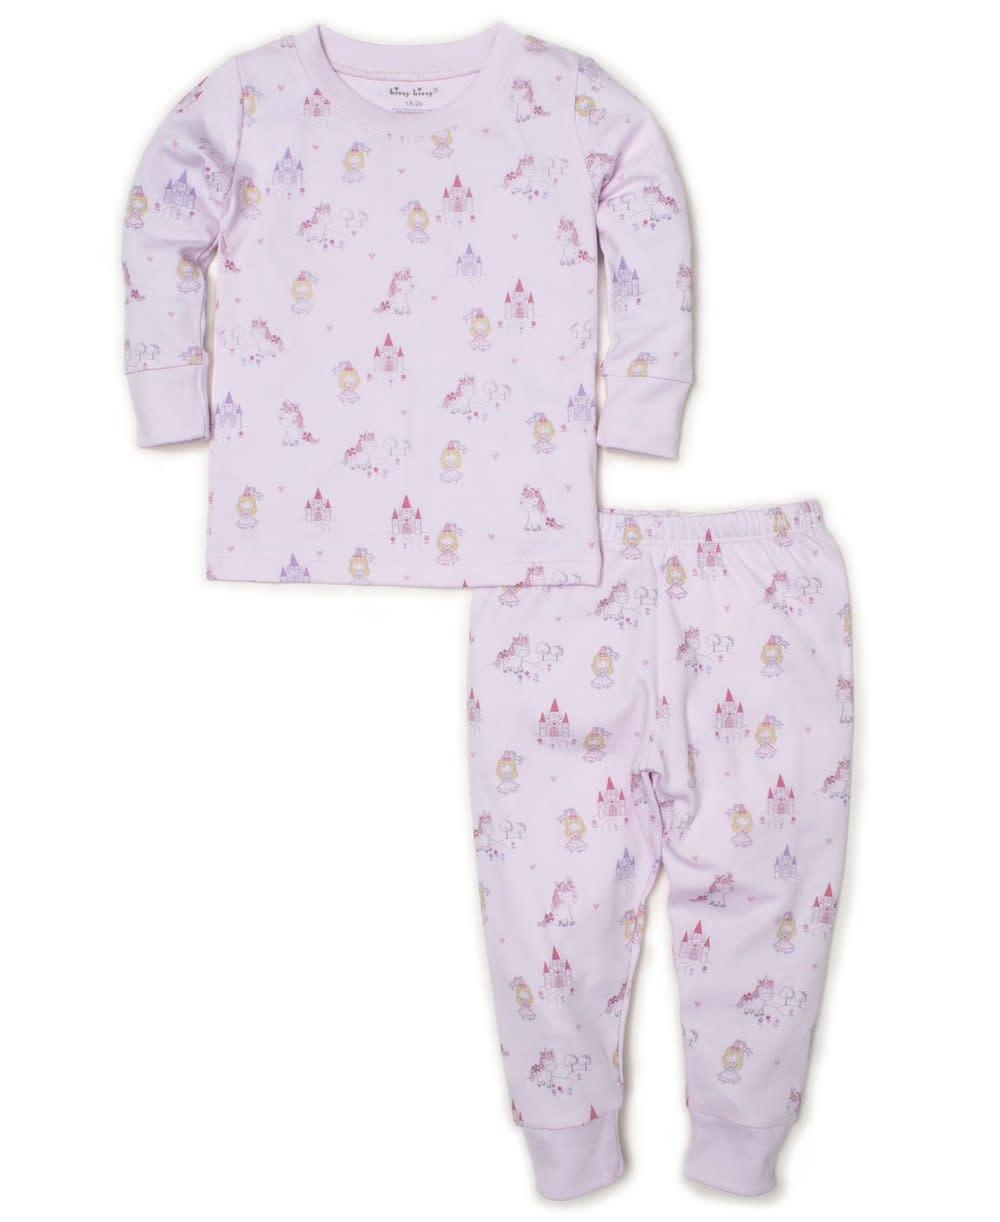 Kissy Kissy Rainbow Unicorns Pajama Set